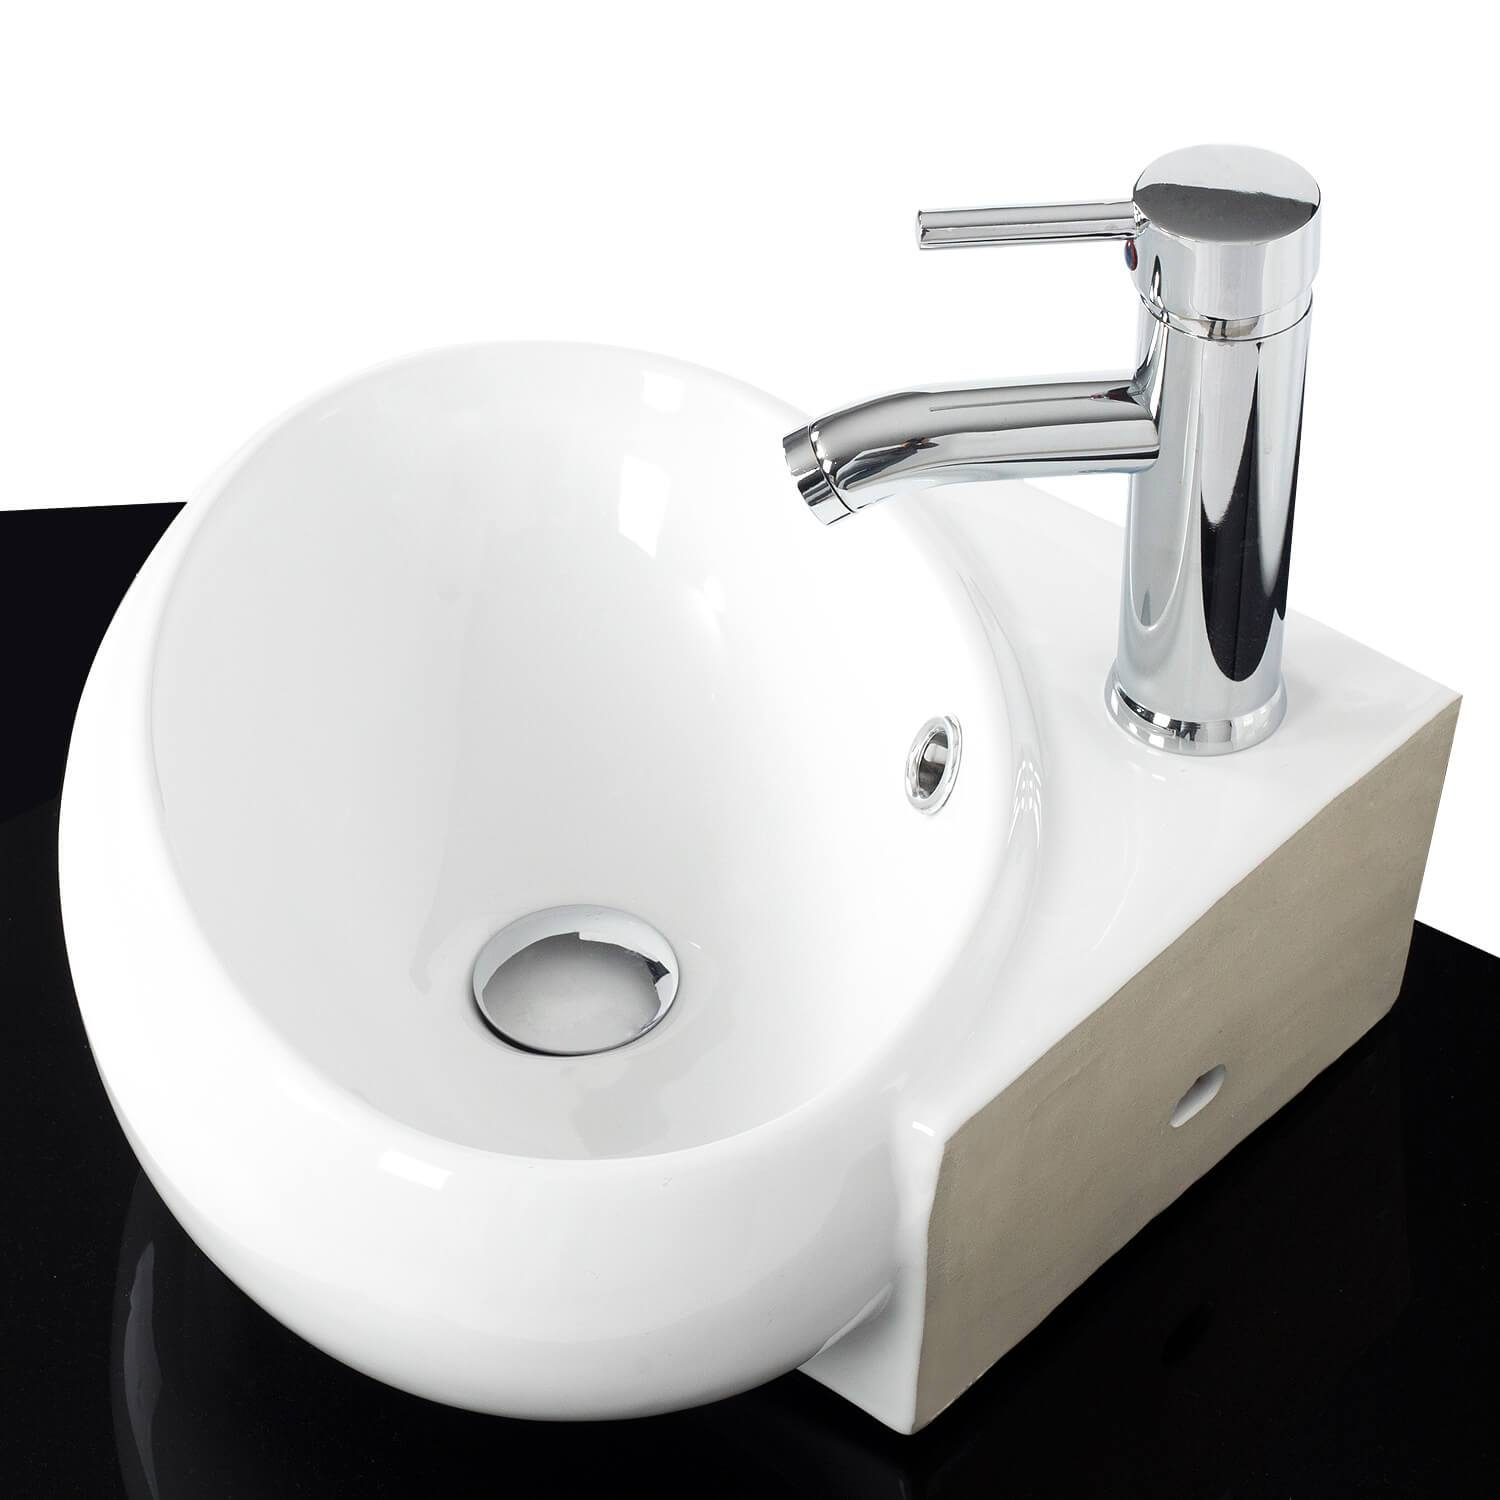 Puluomis White Ceramic Triangle Vessel Sink, Made of High Quality Ceramic, Easy to Assemble